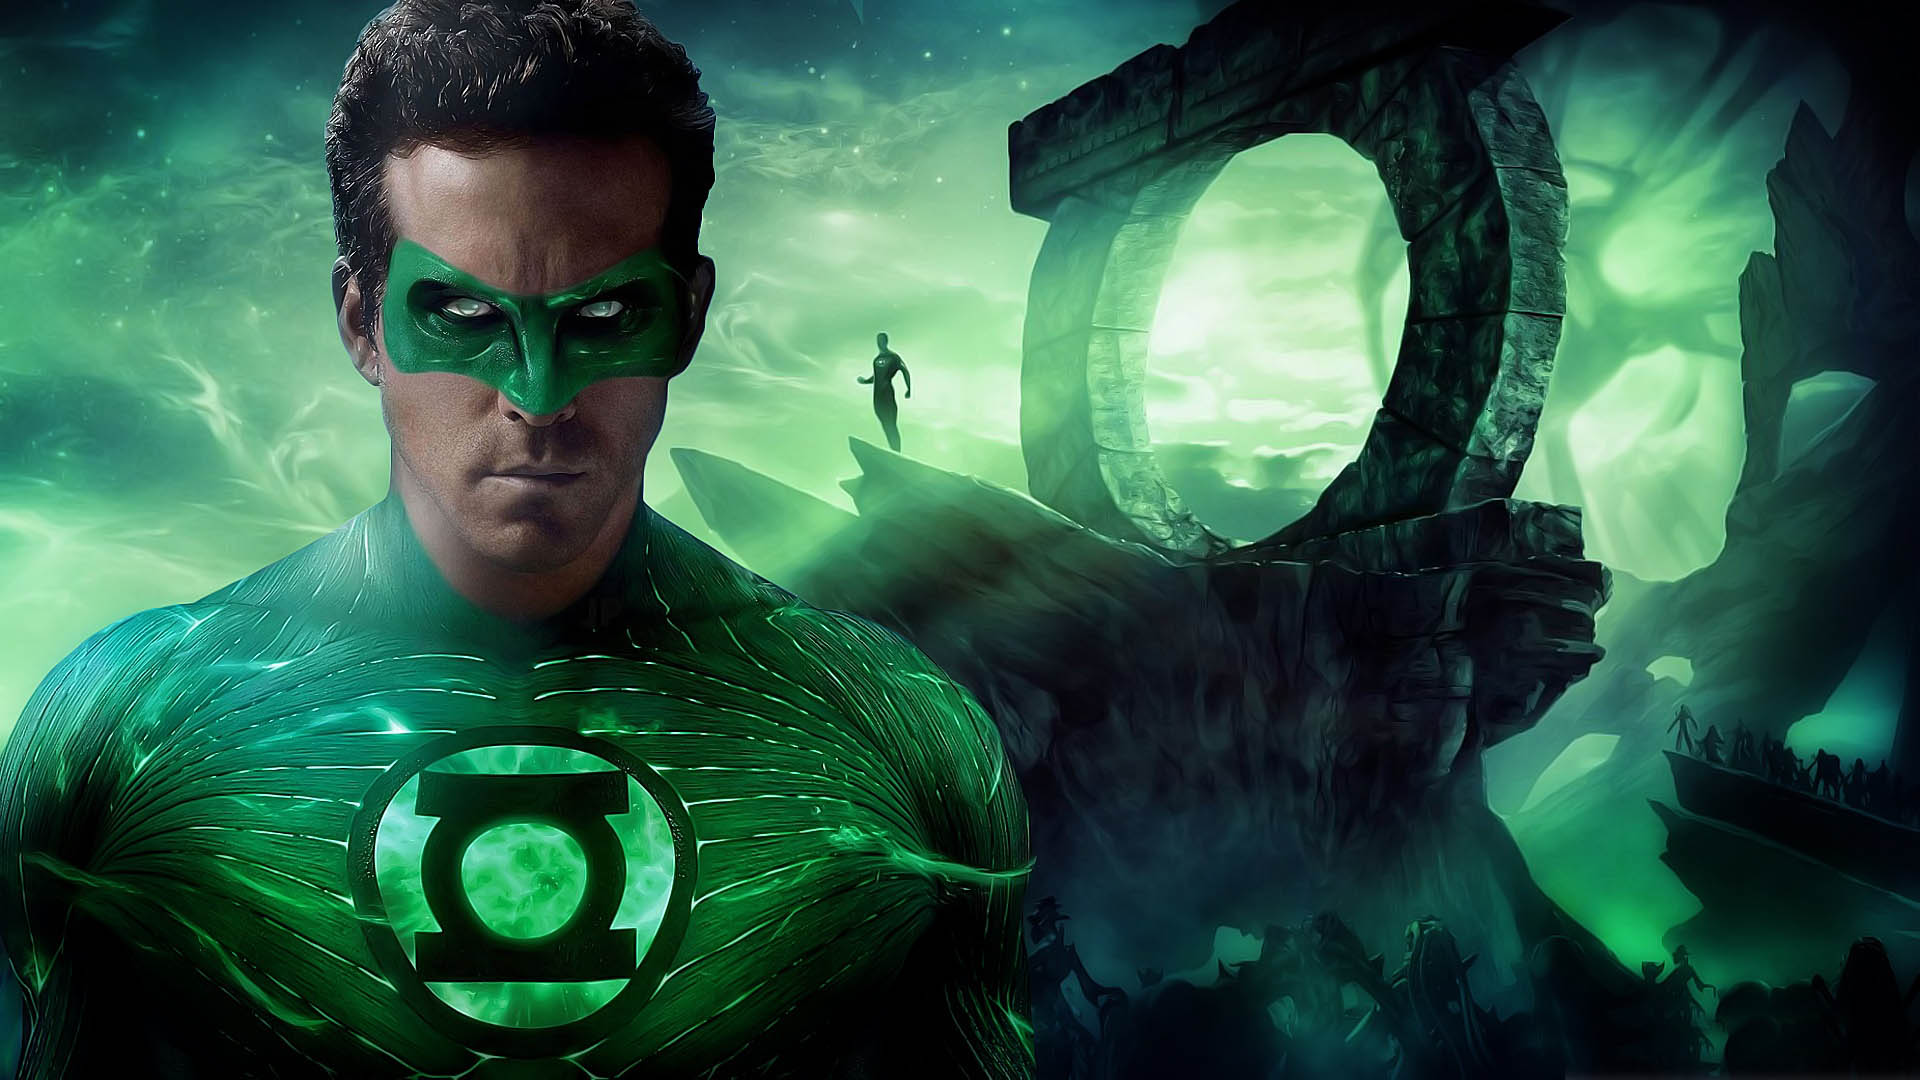 1068574-tv-movies-green-lantern-by-scrano-backgrounds-in-high-quality